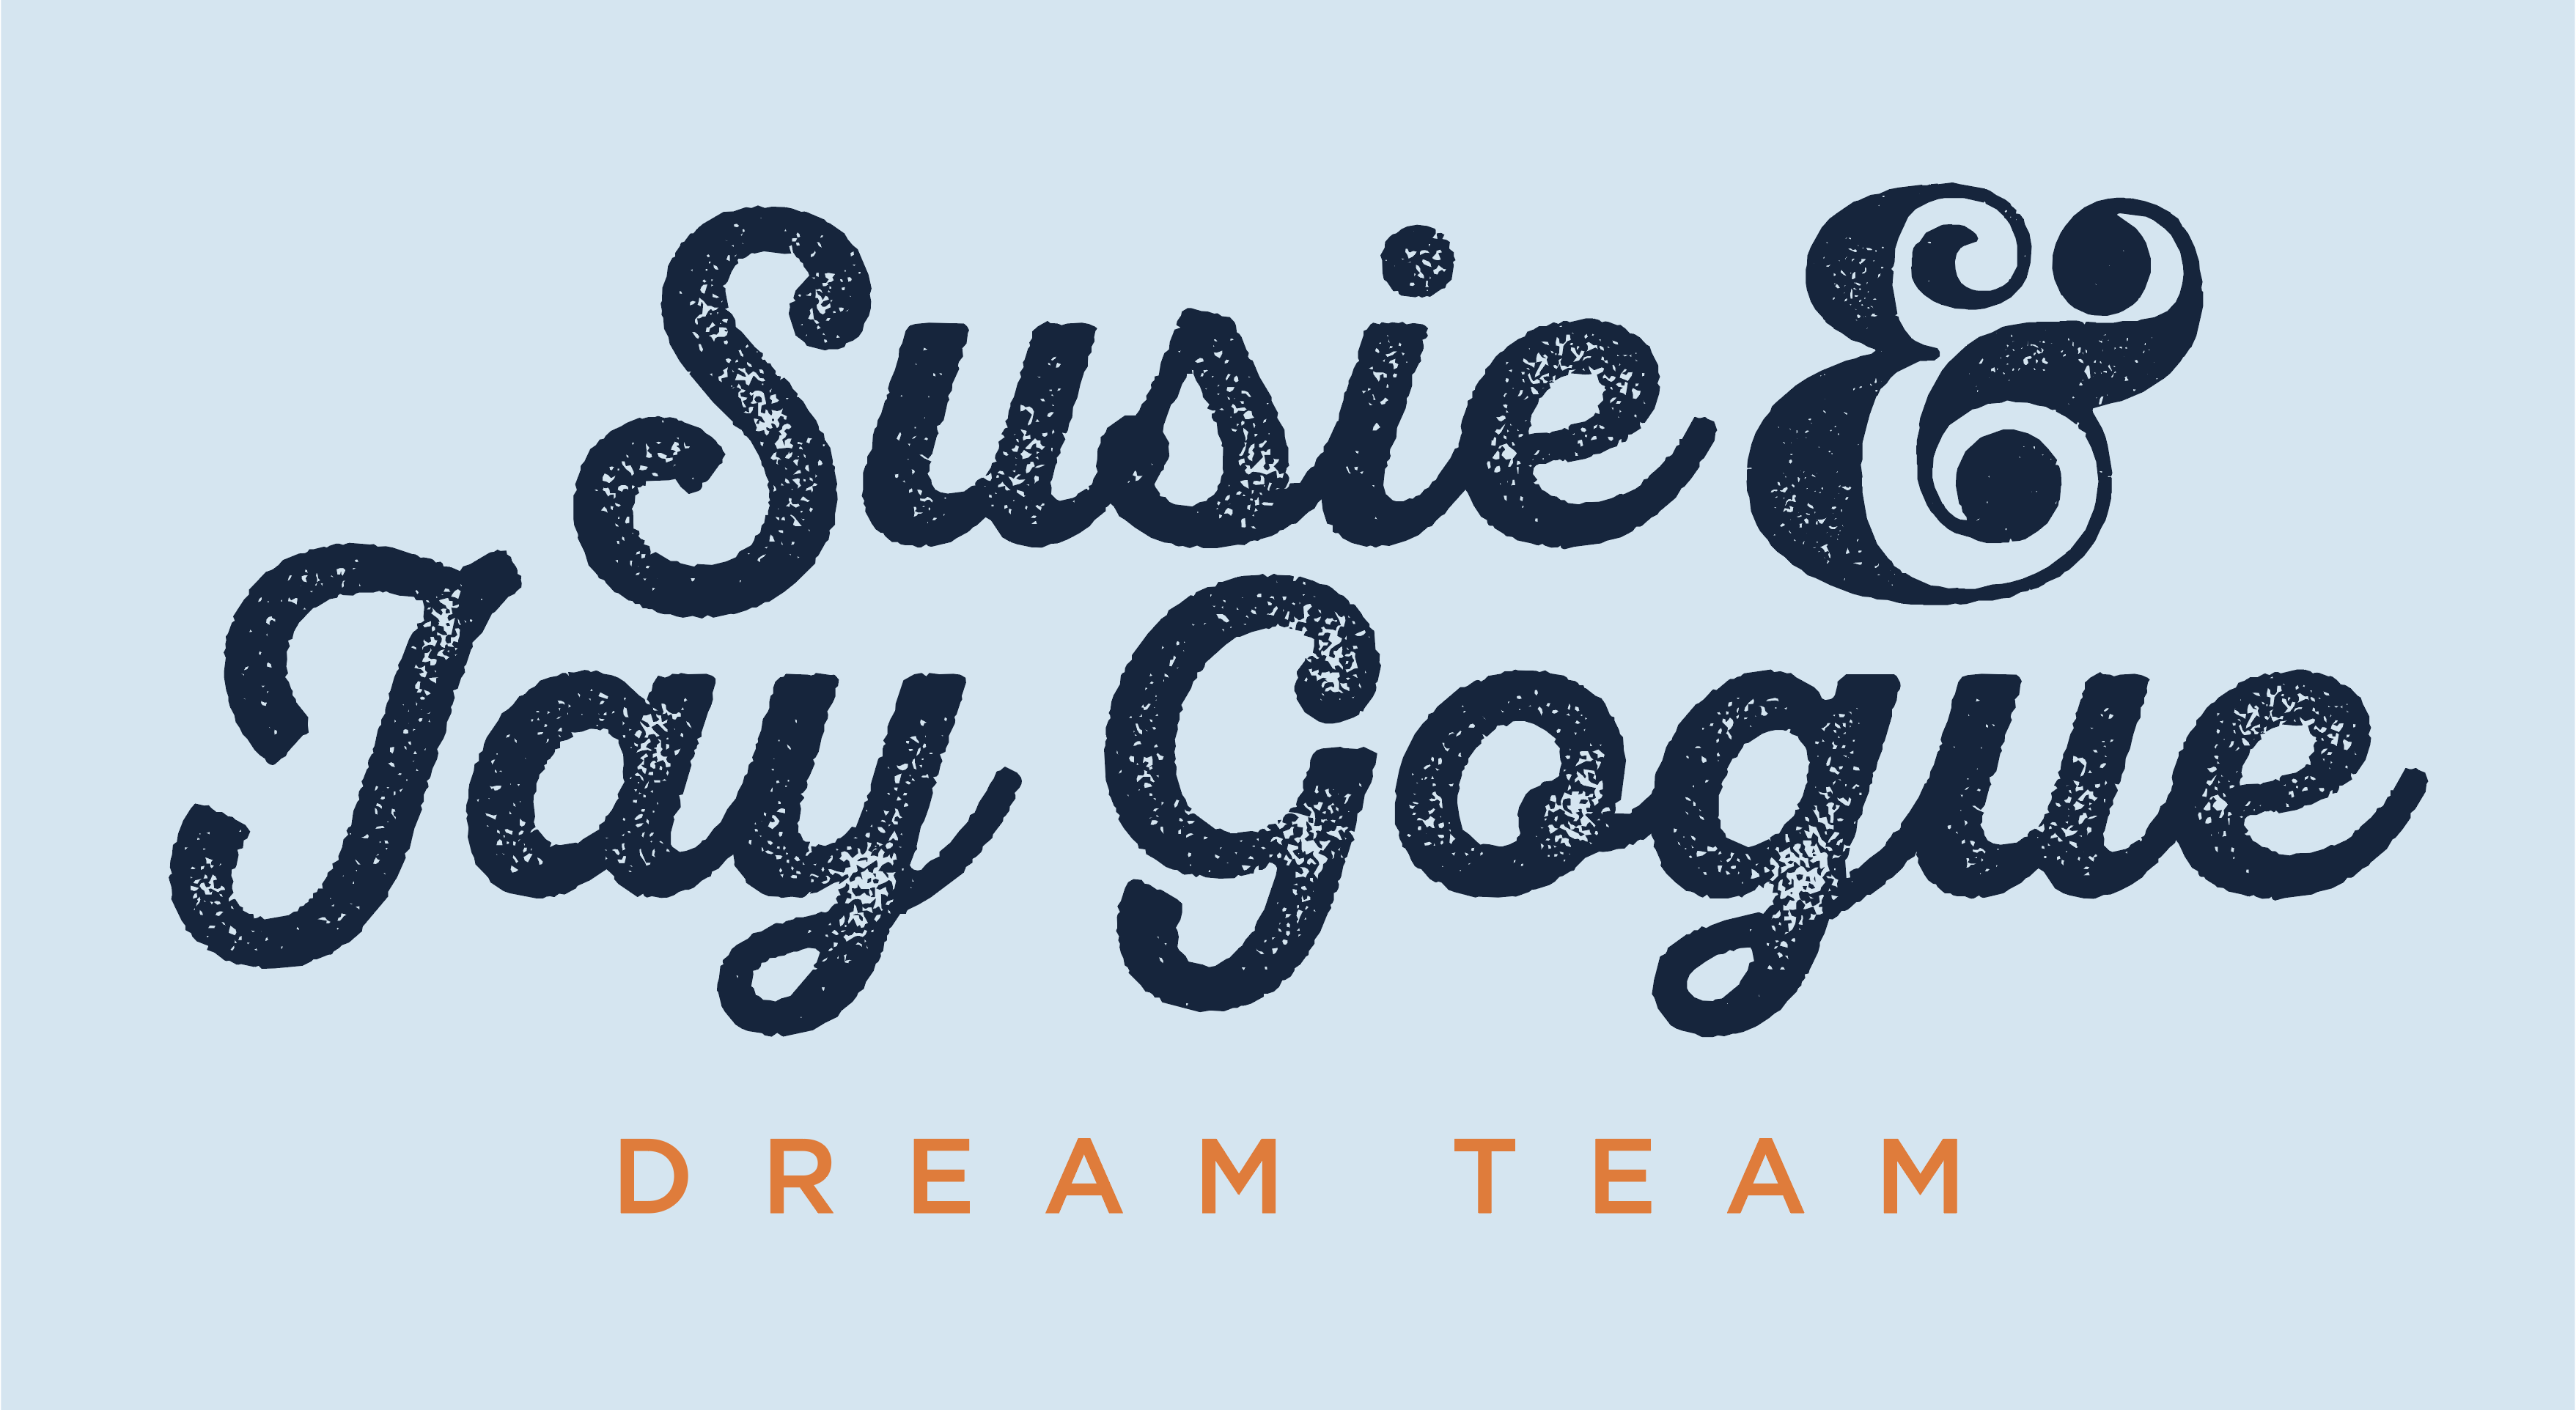 Susie & Jay Gogue Dream Team